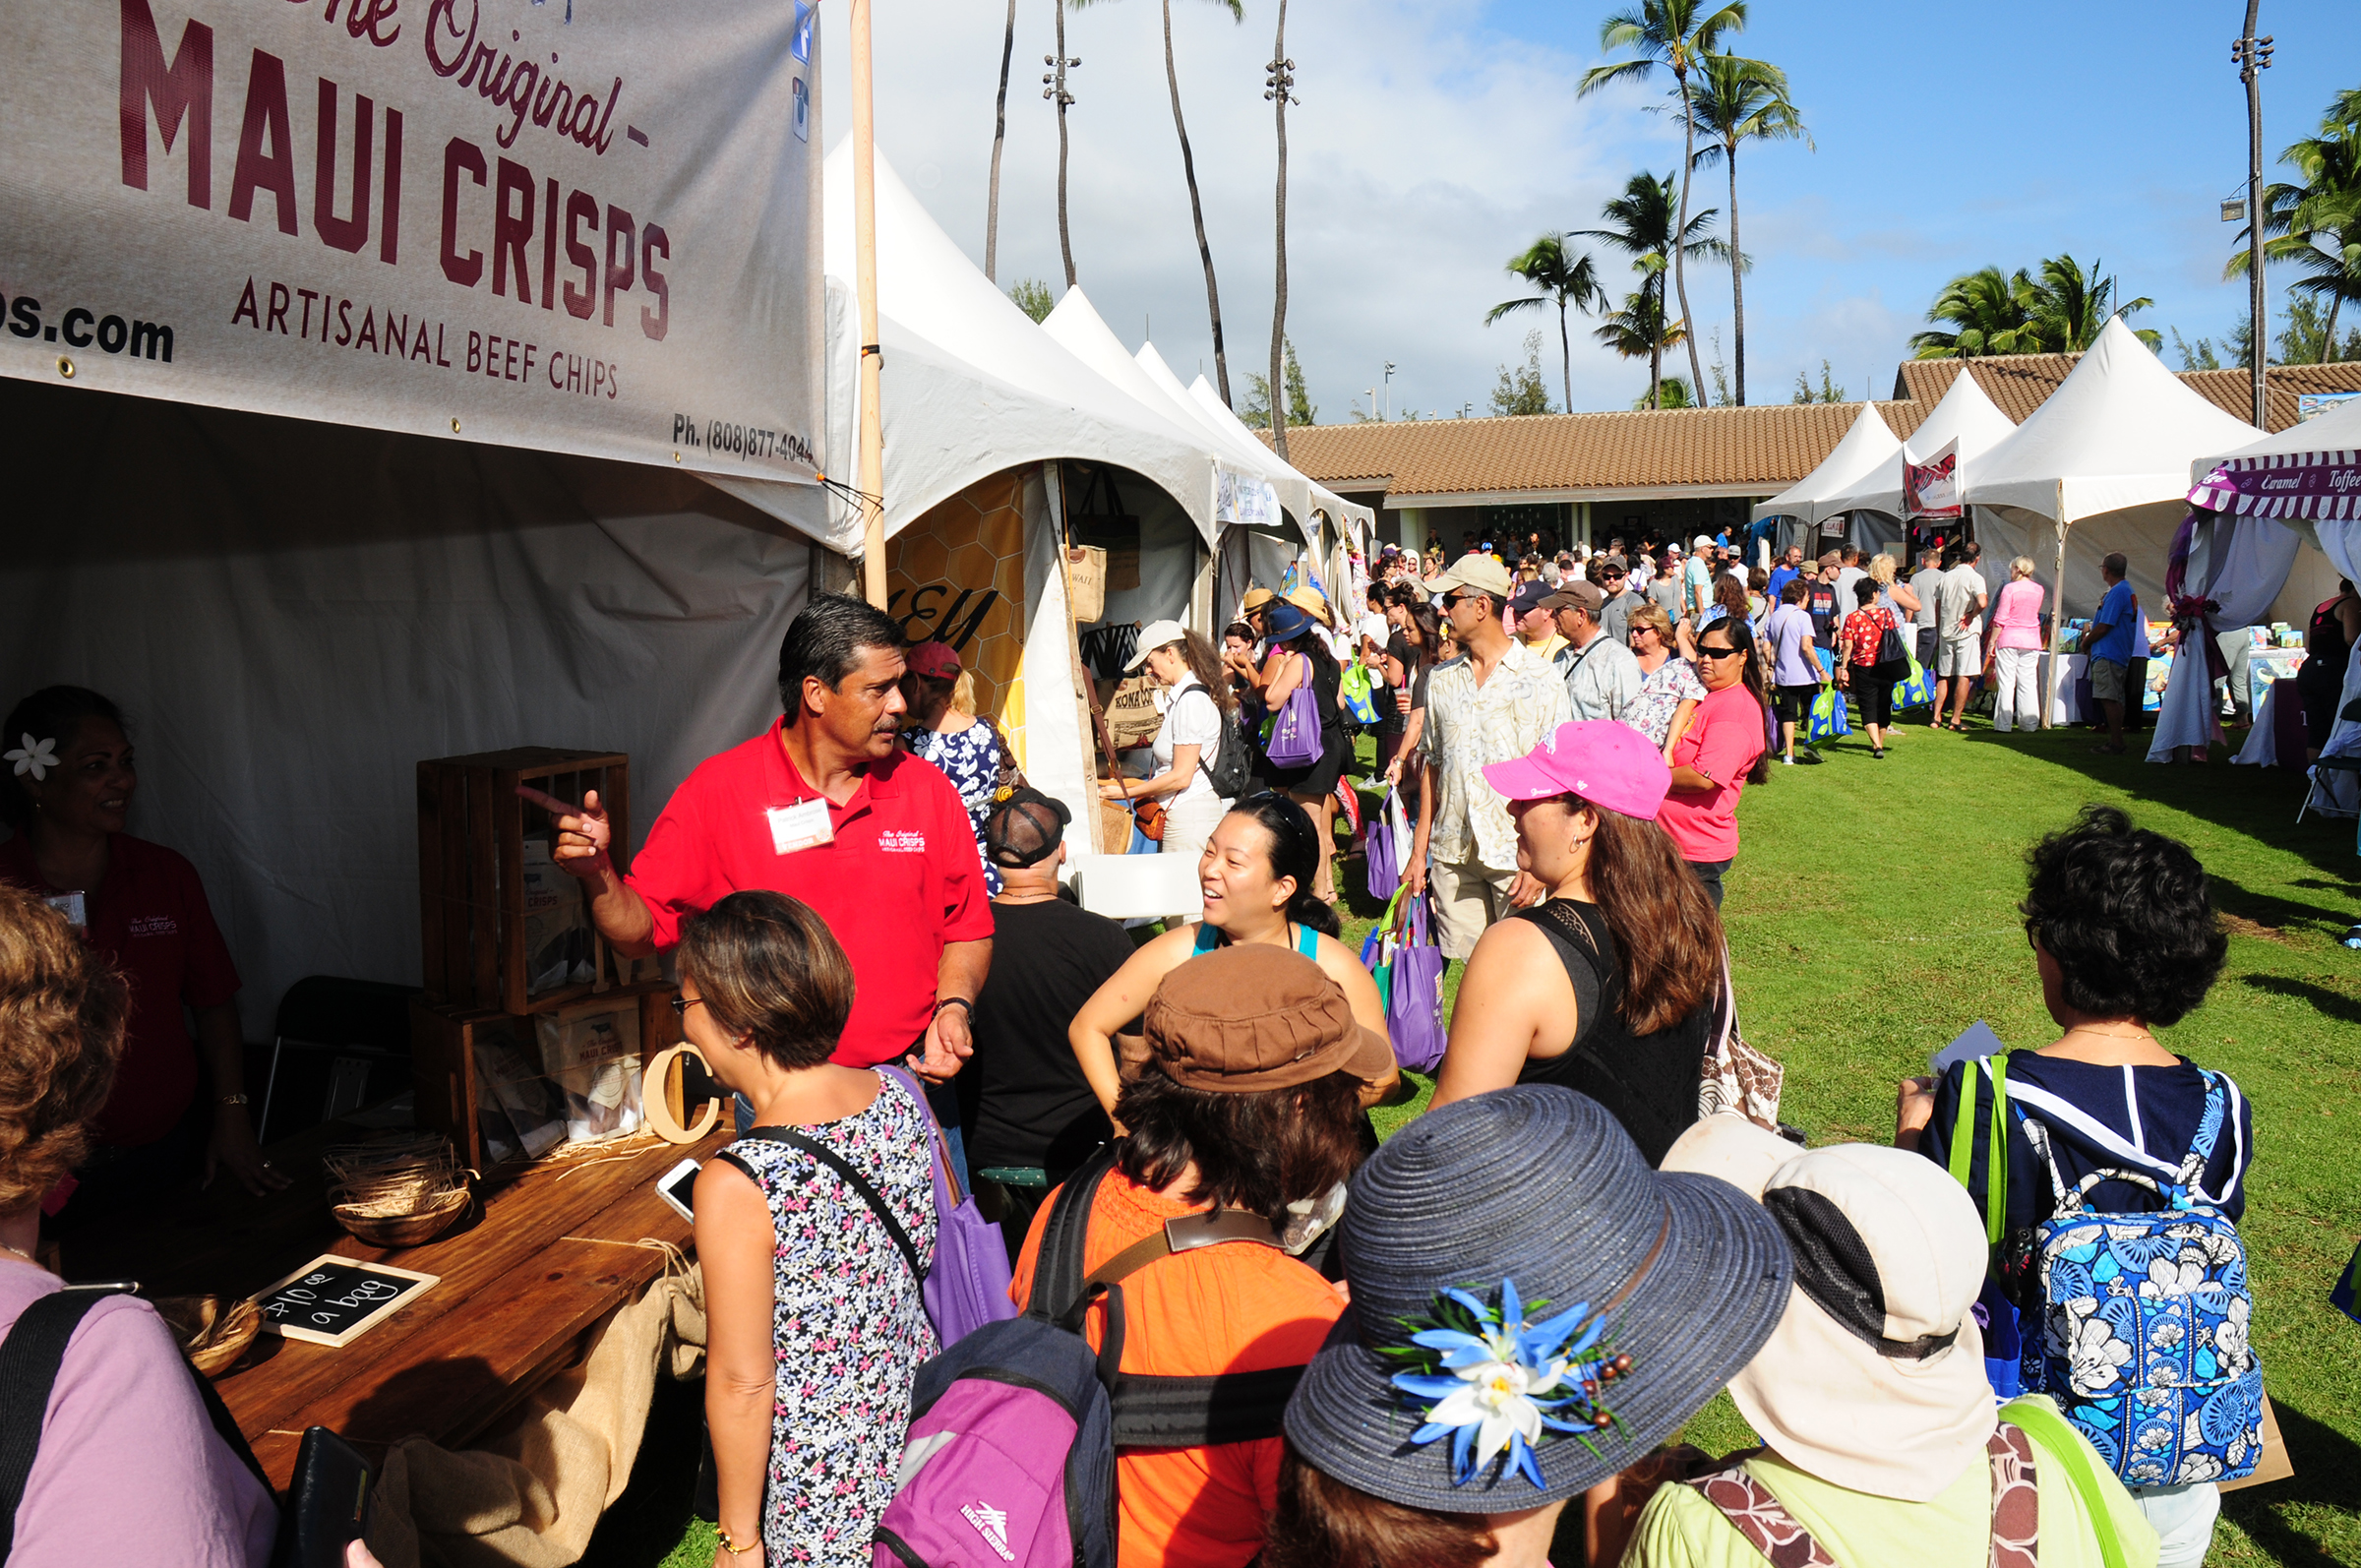 It was a big shopping day for local businesses during the Made in Maui County Festival held this weekend.